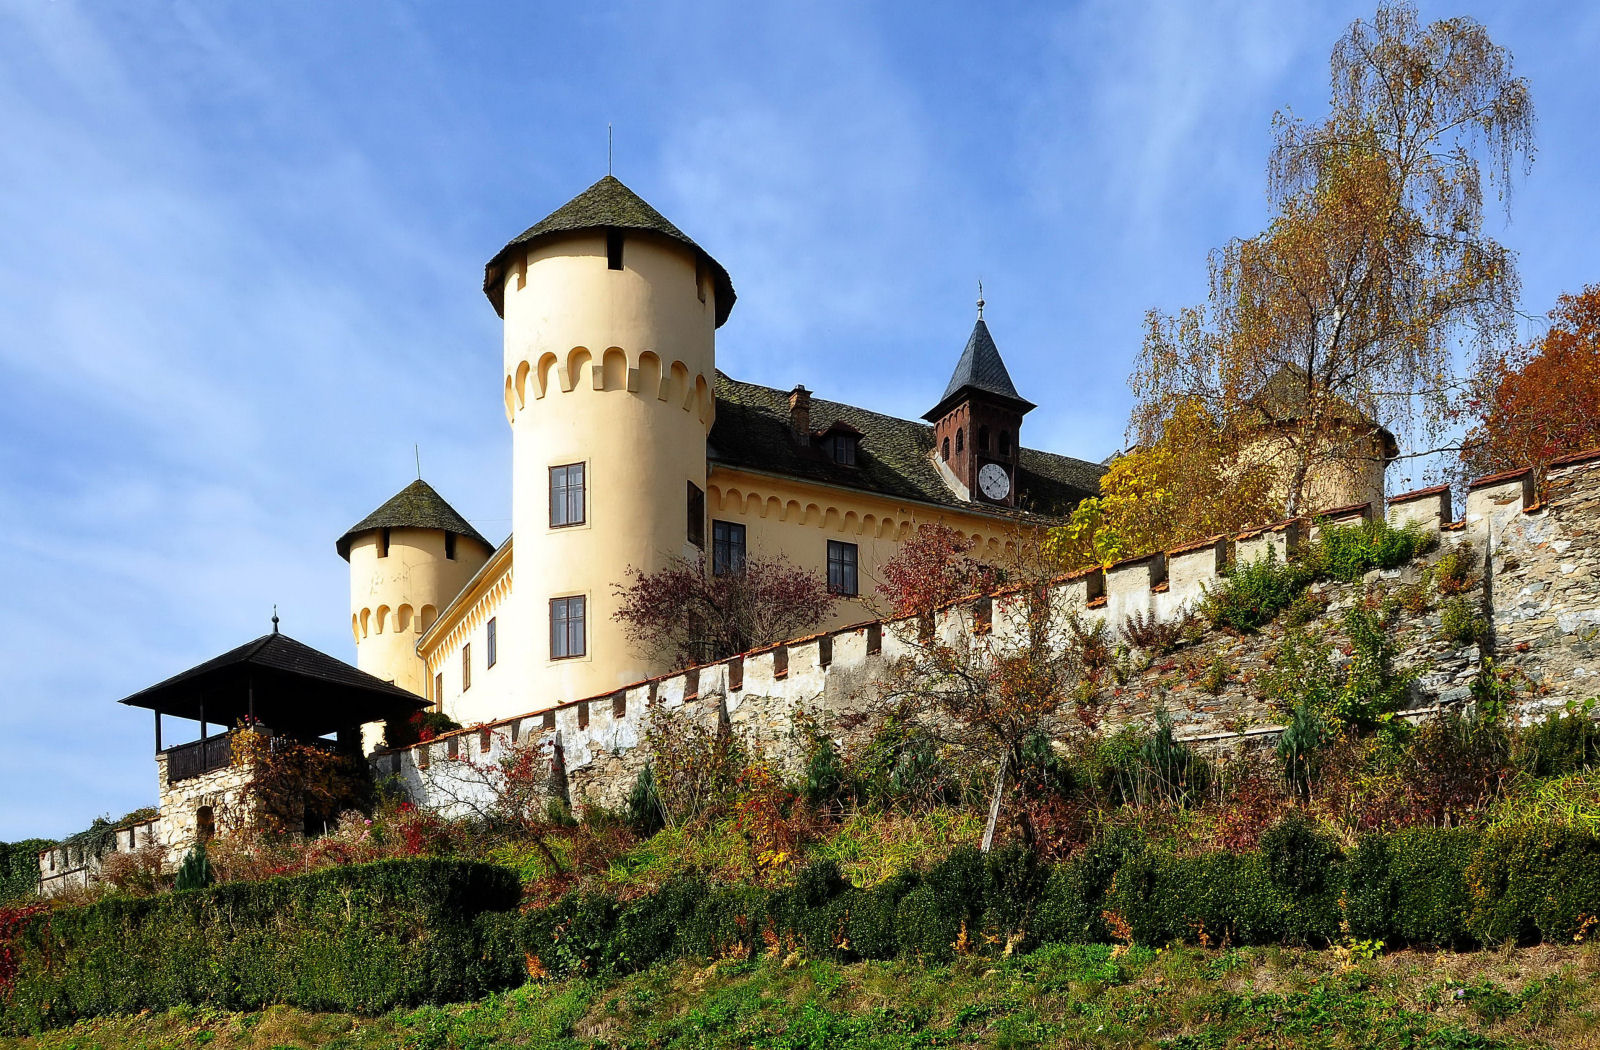 Castle Tentschach in Klagenfurt on the Lake Woerth, Carinthia, Austria